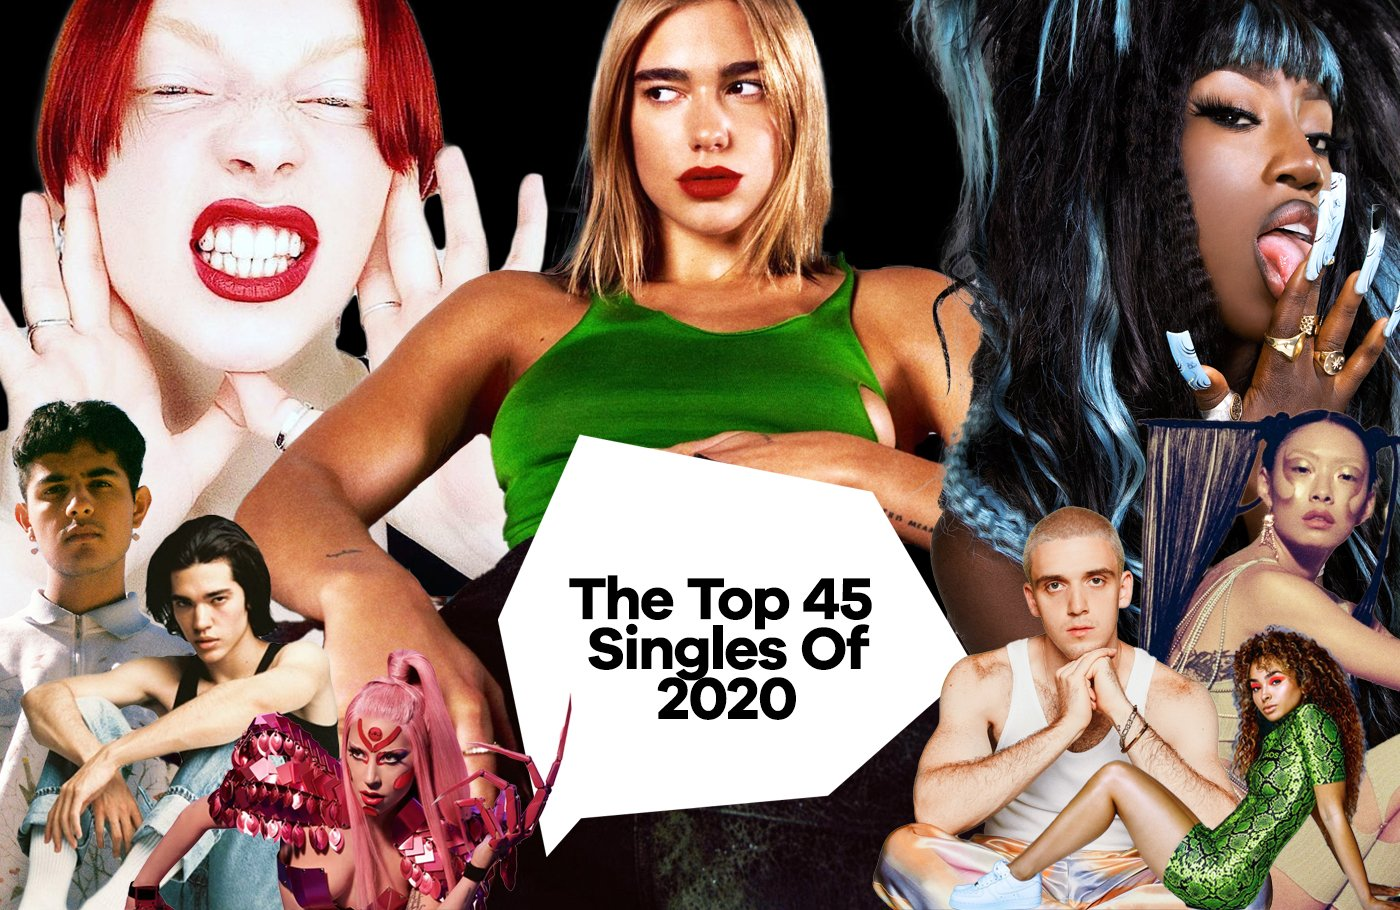 The Top 45 Singles Of 2020